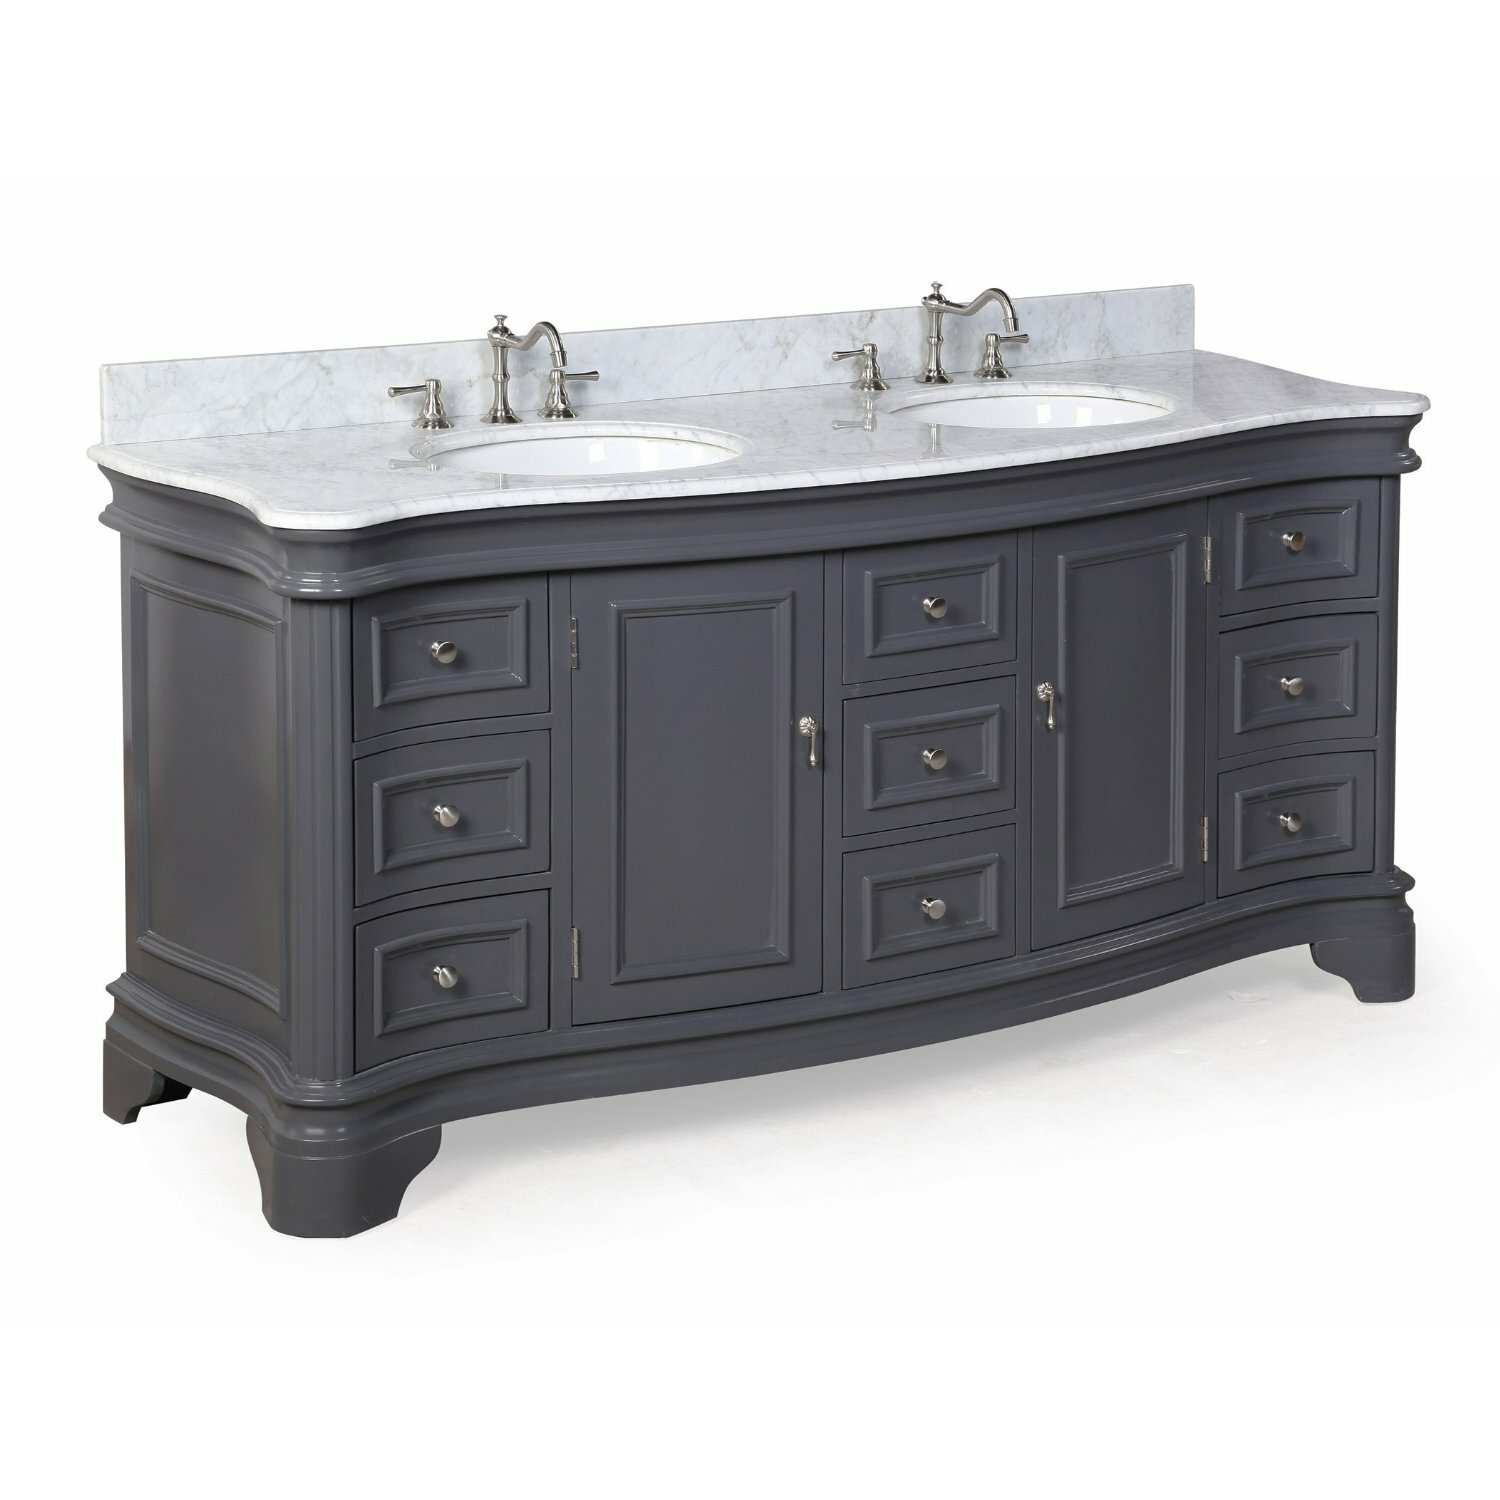 Kbc Katherine 72 Double Bathroom Vanity Set Reviews Wayfair